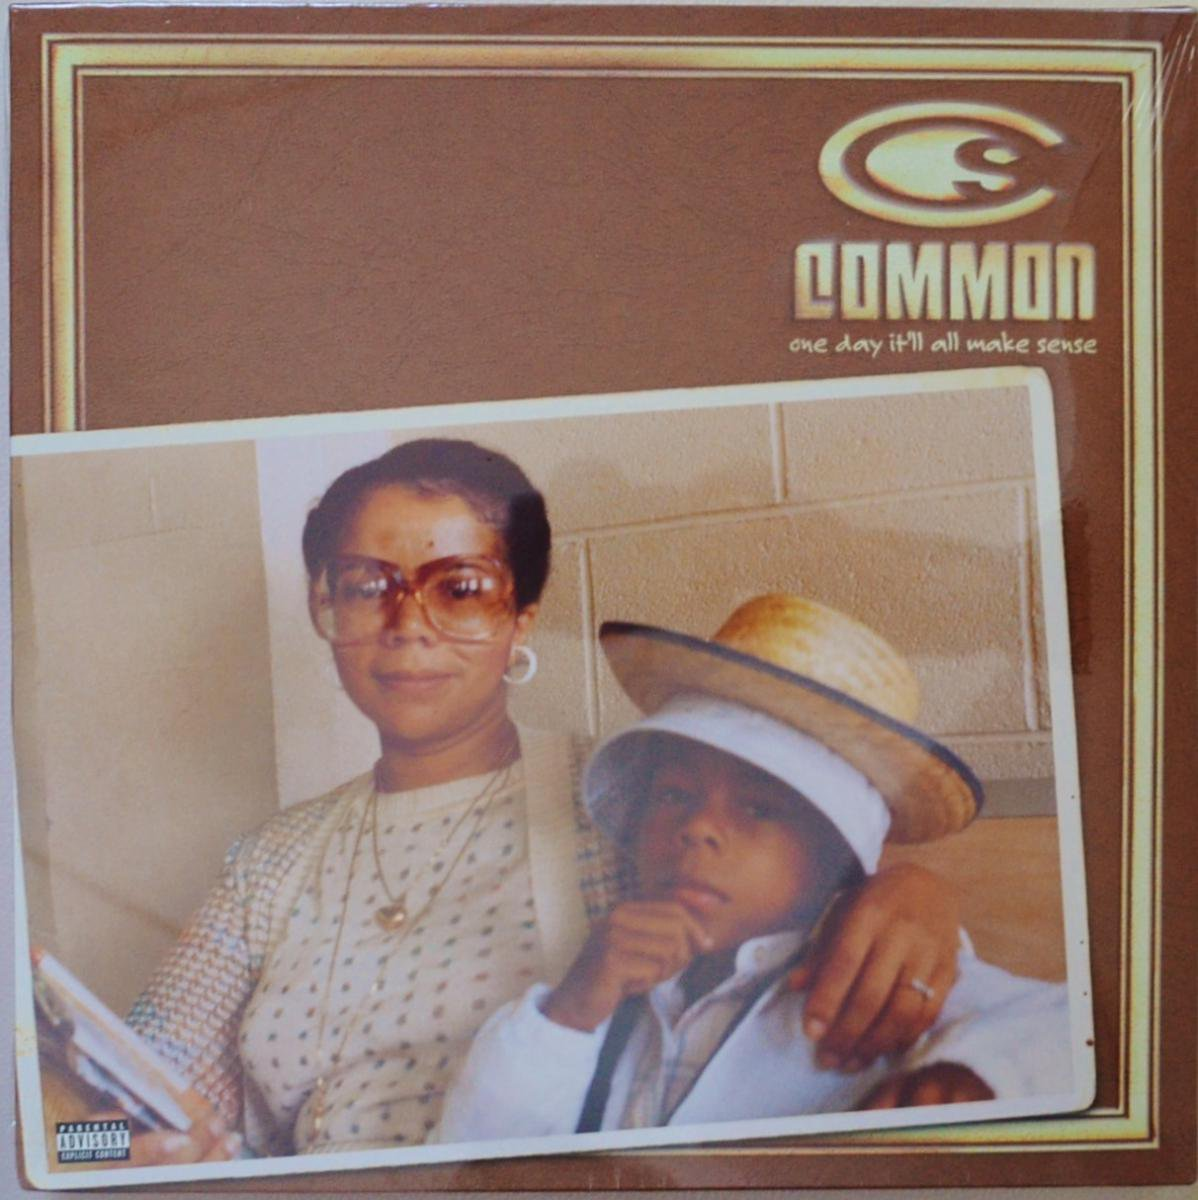 COMMON / ONE DAY IT'LL ALL MAKE SENSE (1LP)